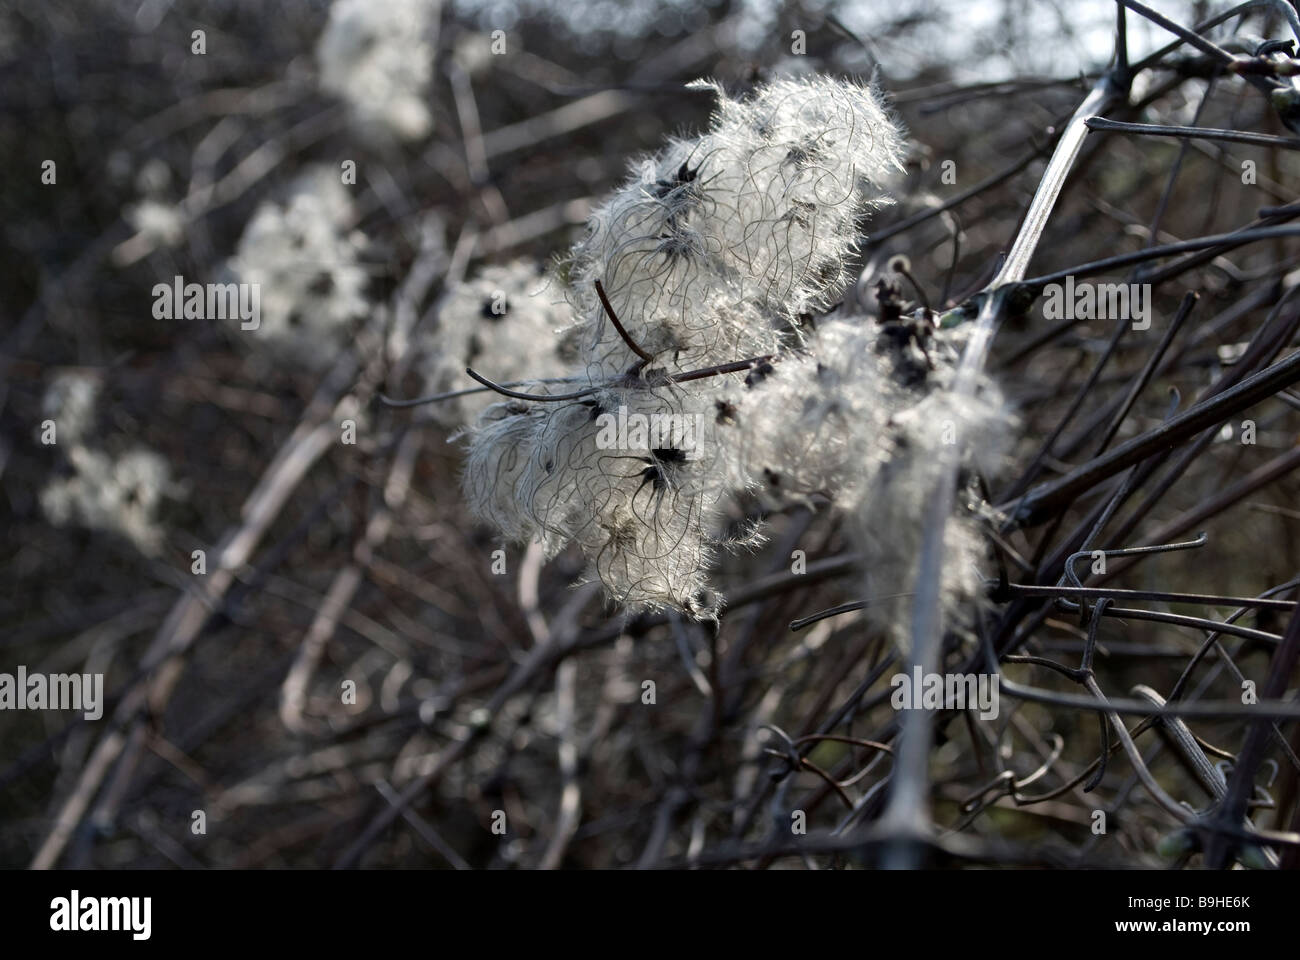 Old man's beard - Stock Image